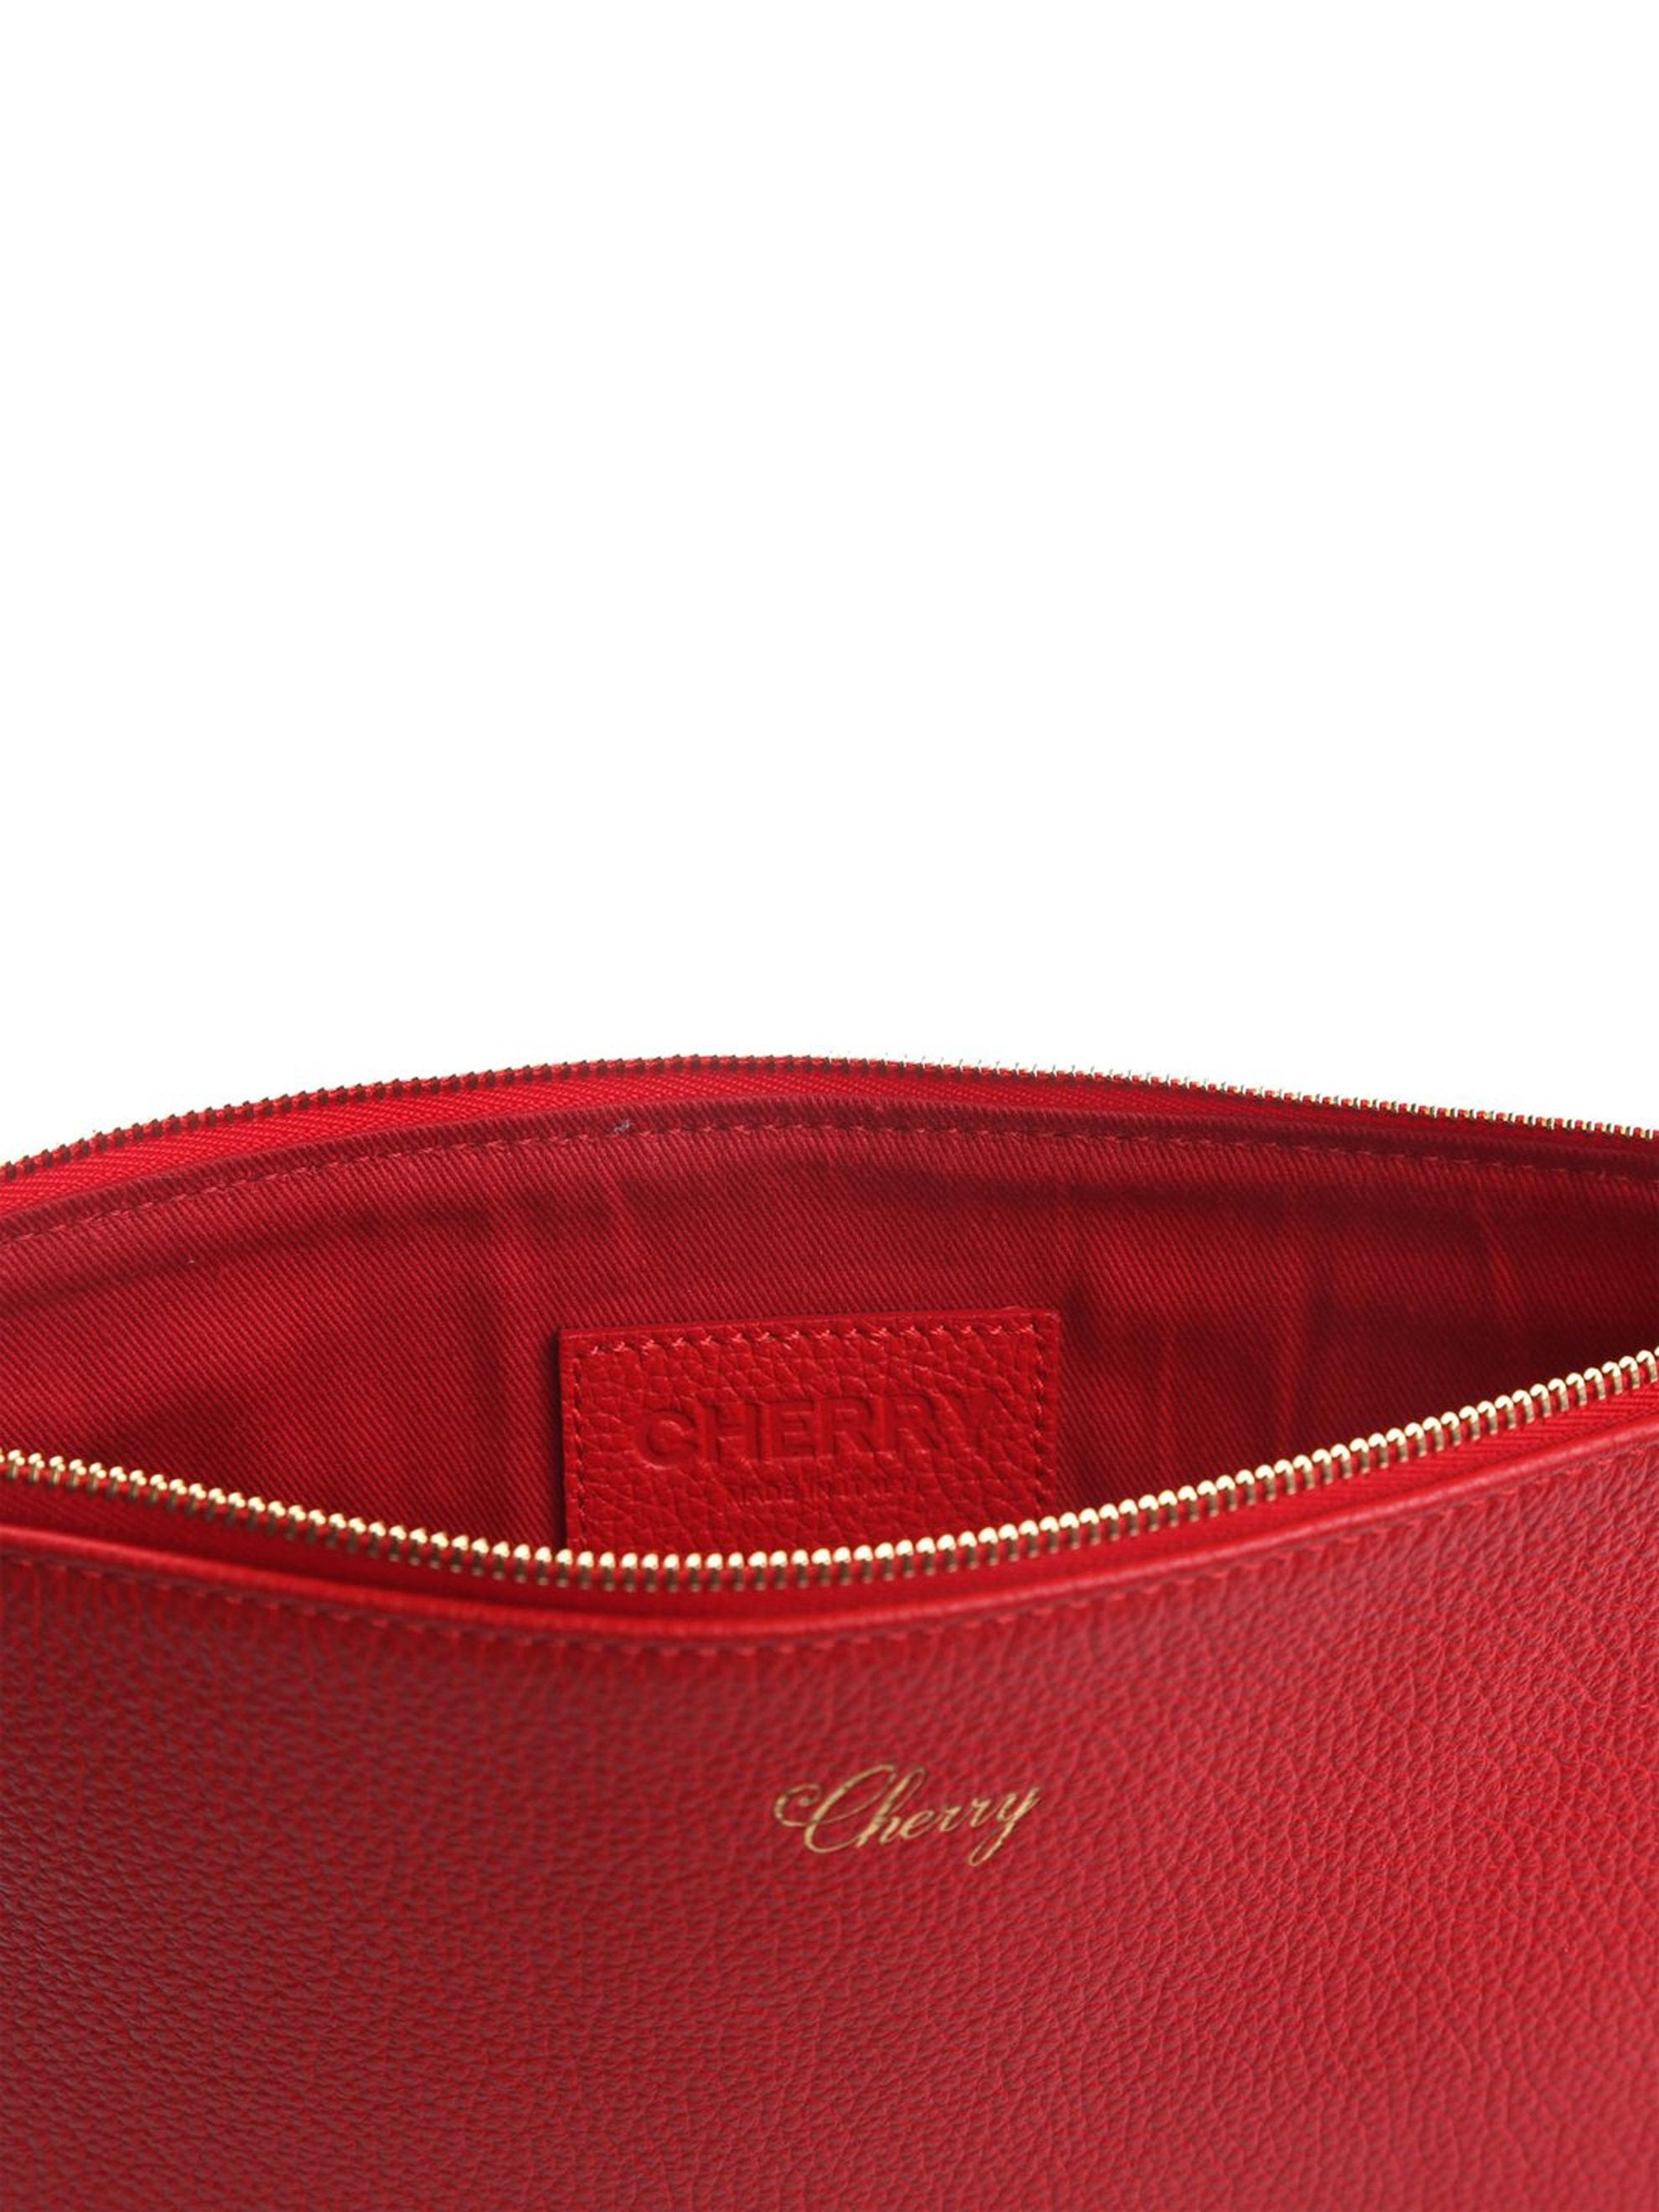 Red Leather Pouch 2